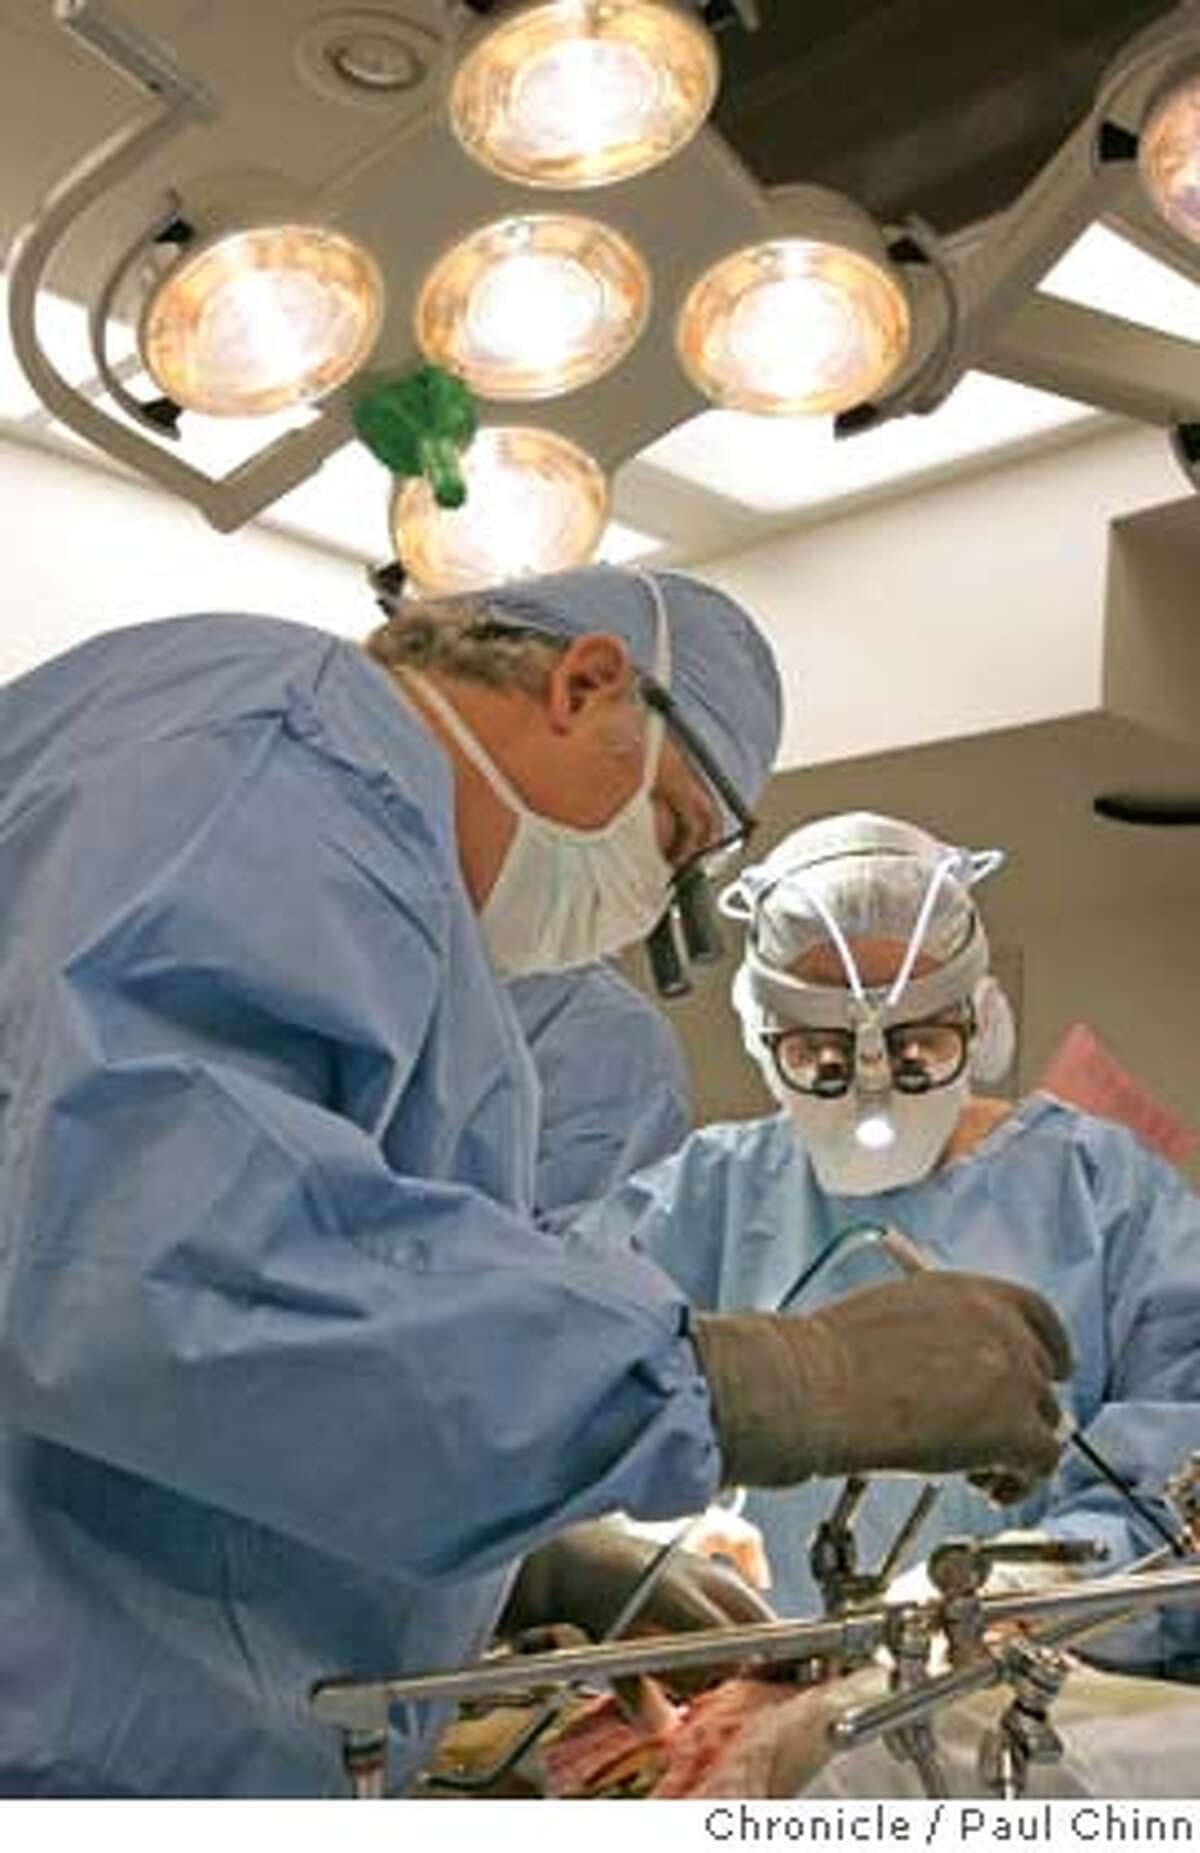 Transplant surgeons - and husband and wife - John Roberts (left) and Nancy Ascher remove a liver from a living donor at UCSF Medical Center on 11/3/05 in San Francisco, Calif. PAUL CHINN/The Chronicle